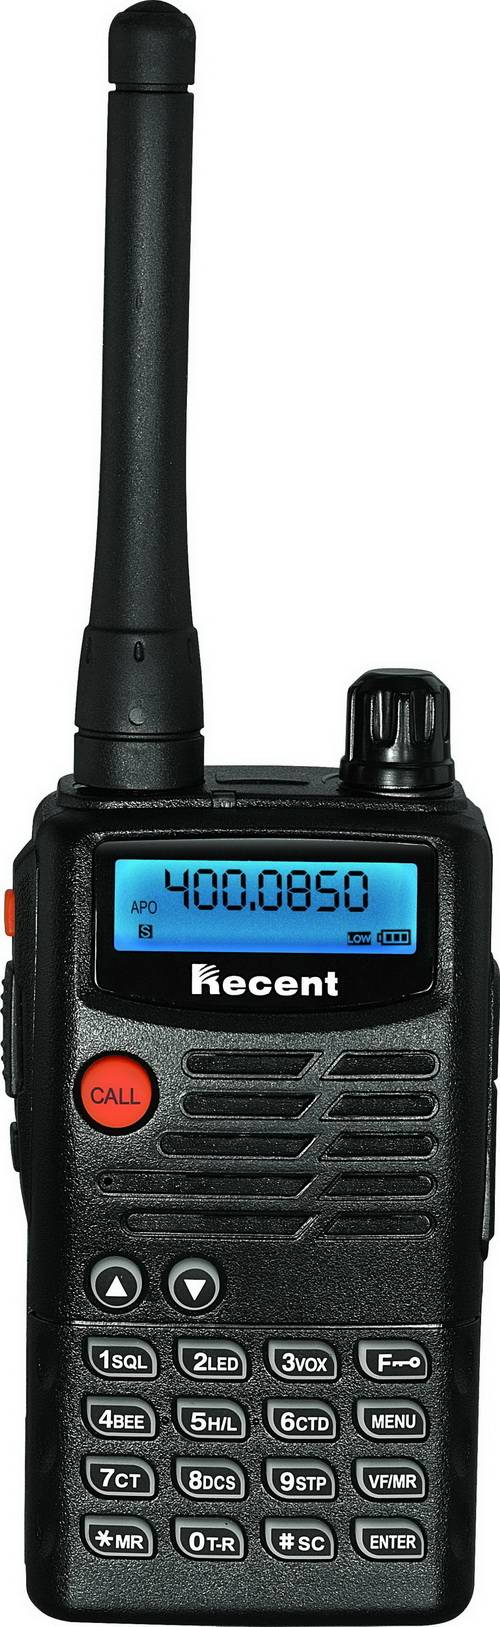 RS-460S Professional FM Transceiver